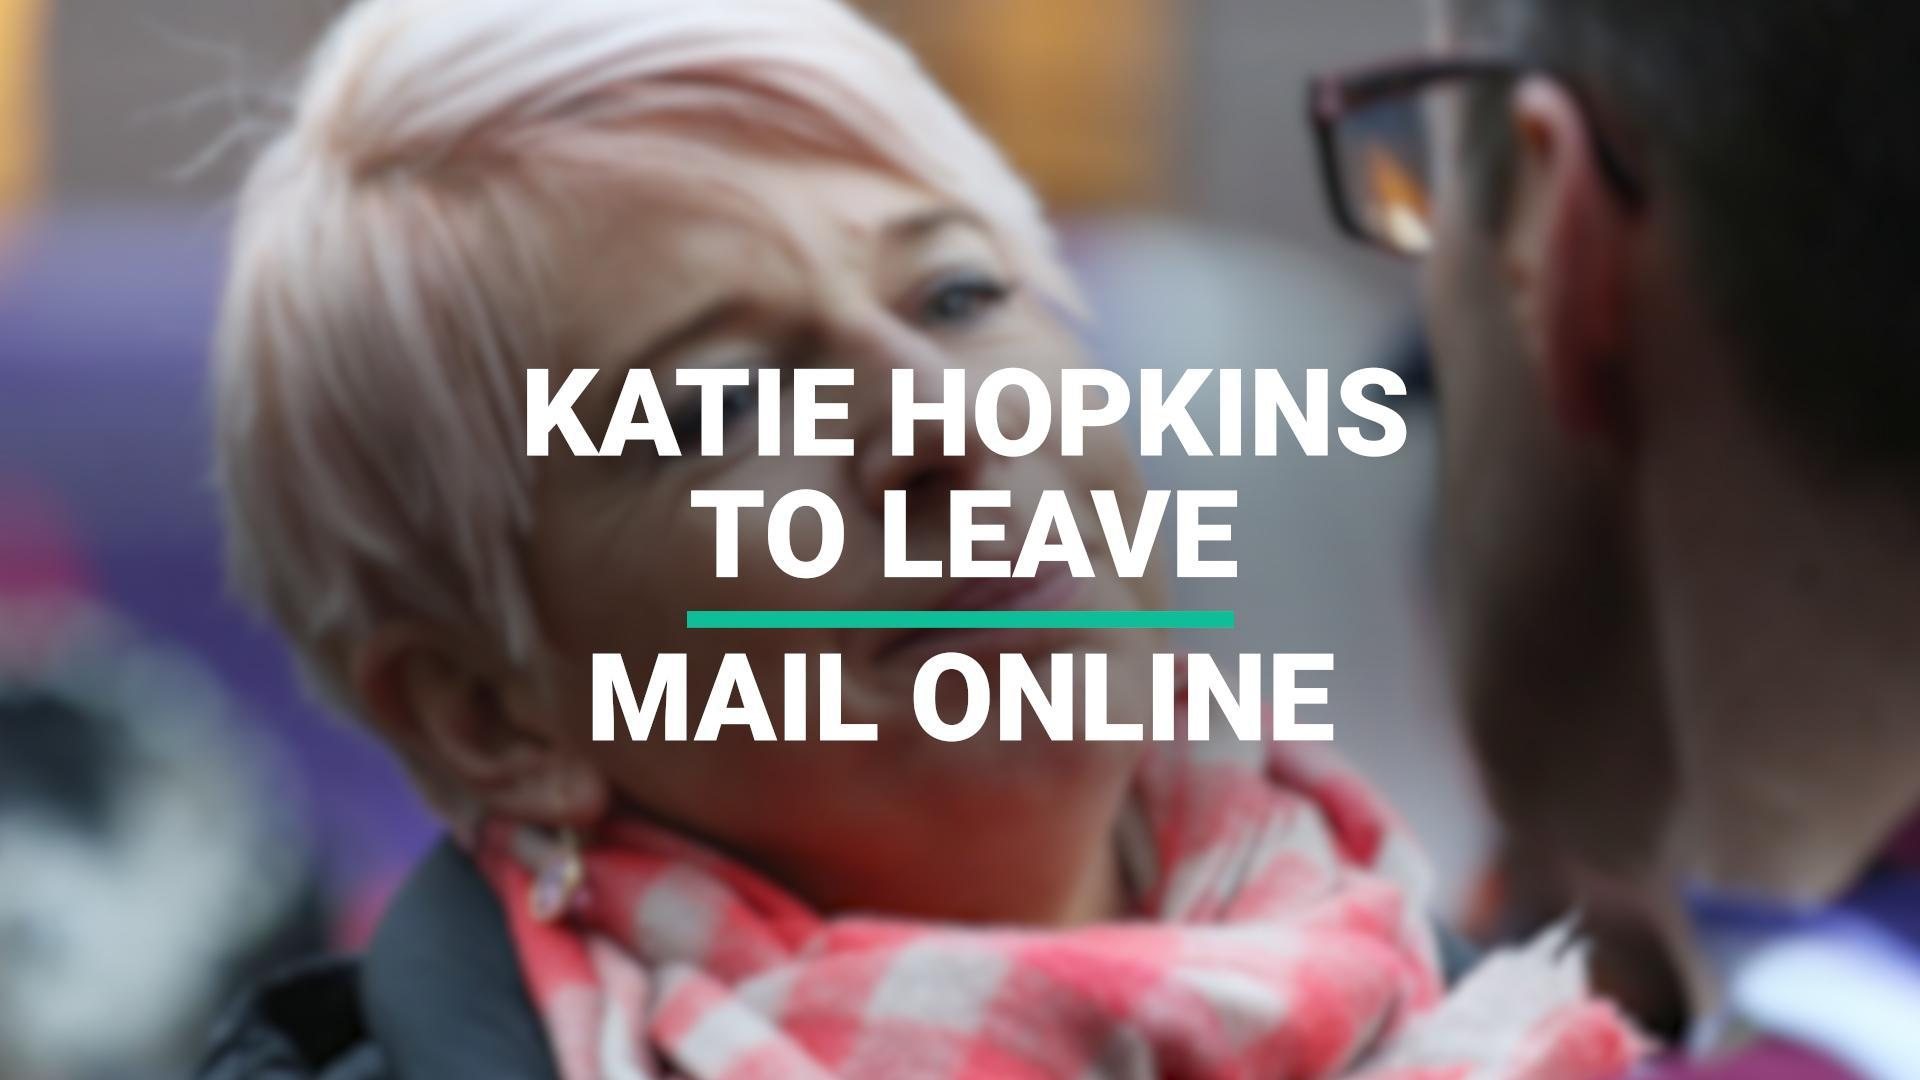 Katie Hopkins: PayPal Criticised For Allowing Her To Raise Money On Platform